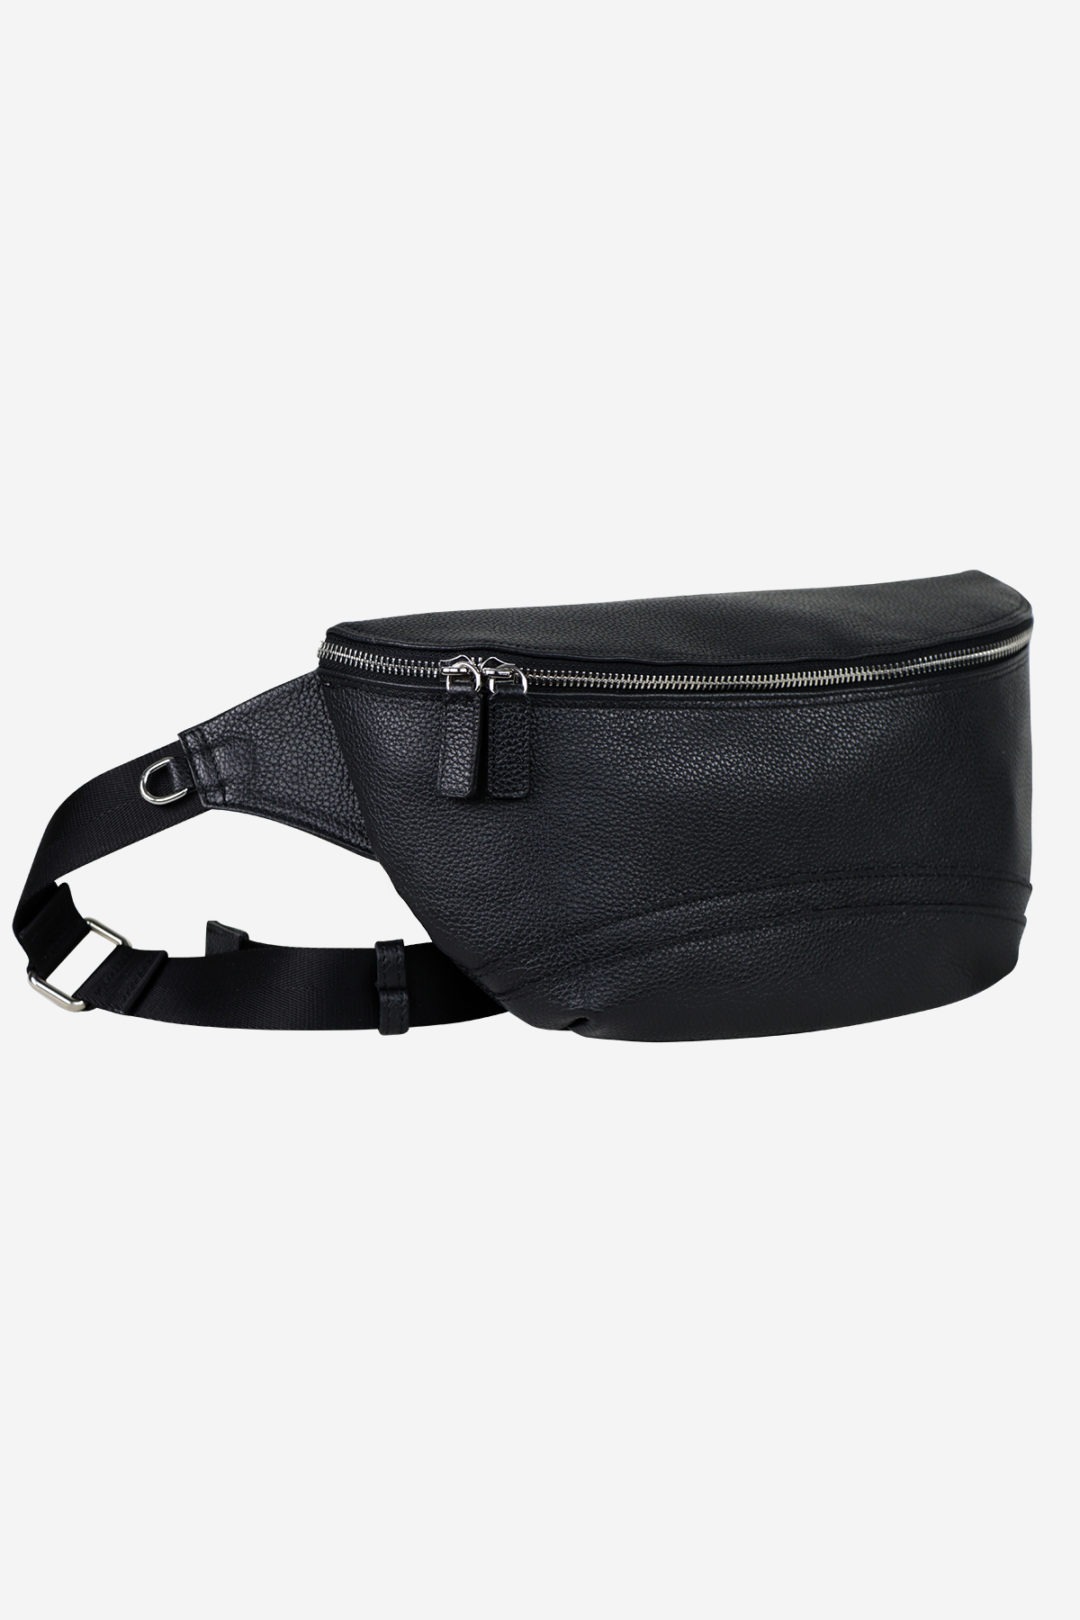 Modern Pouch black leather